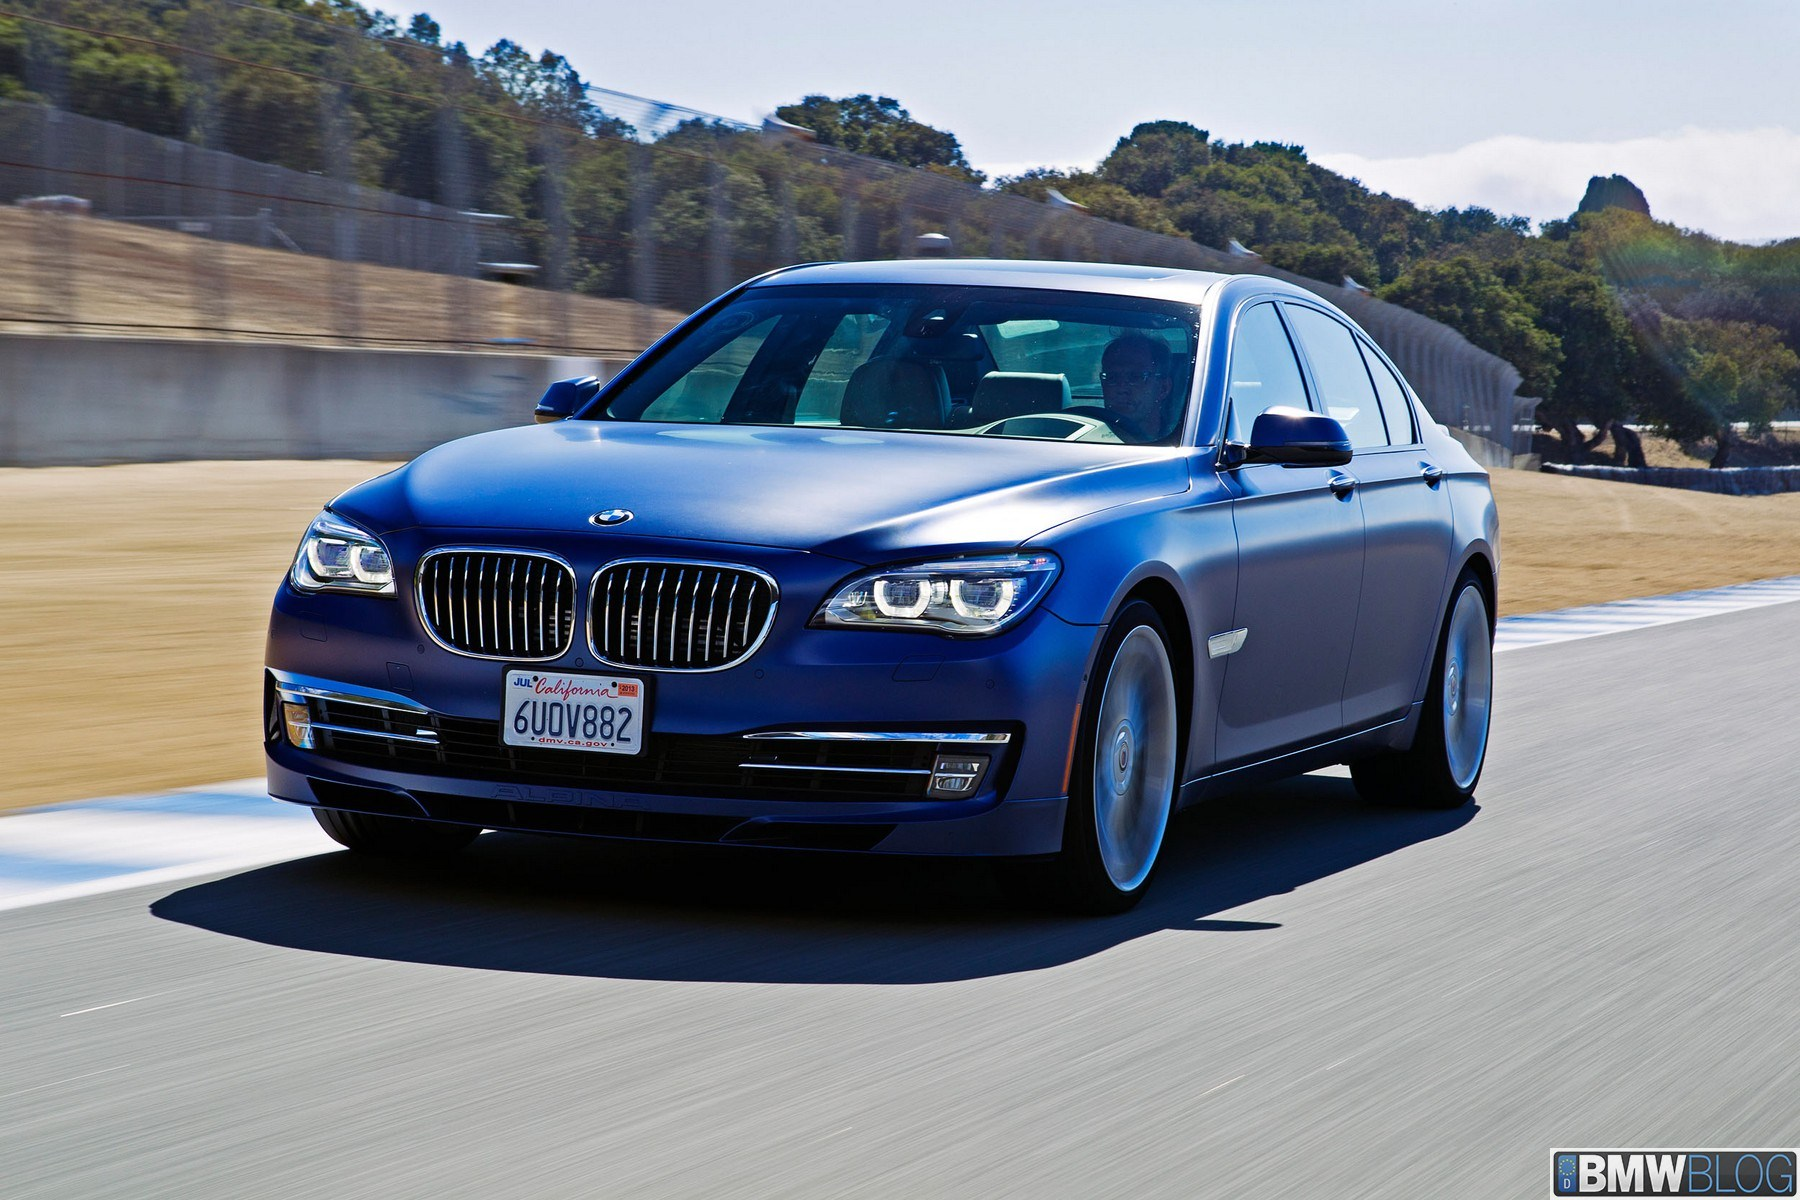 Bmw Alpina B7 Facelift In Alpina Blau Matt Bilder Aus